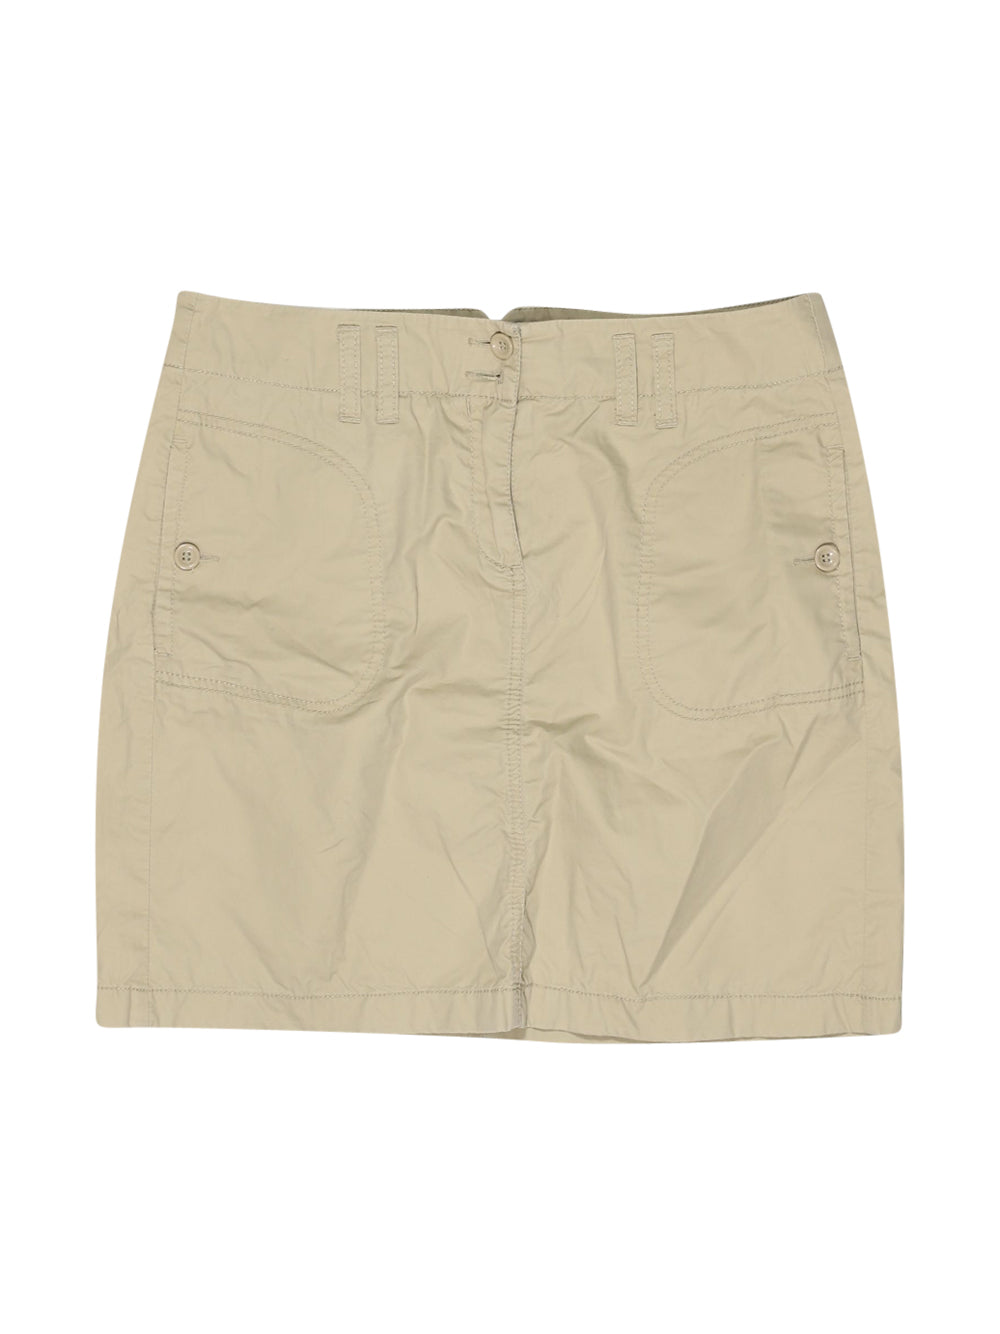 Front photo of Preloved Esprit Beige Woman's shorts - size 8/S